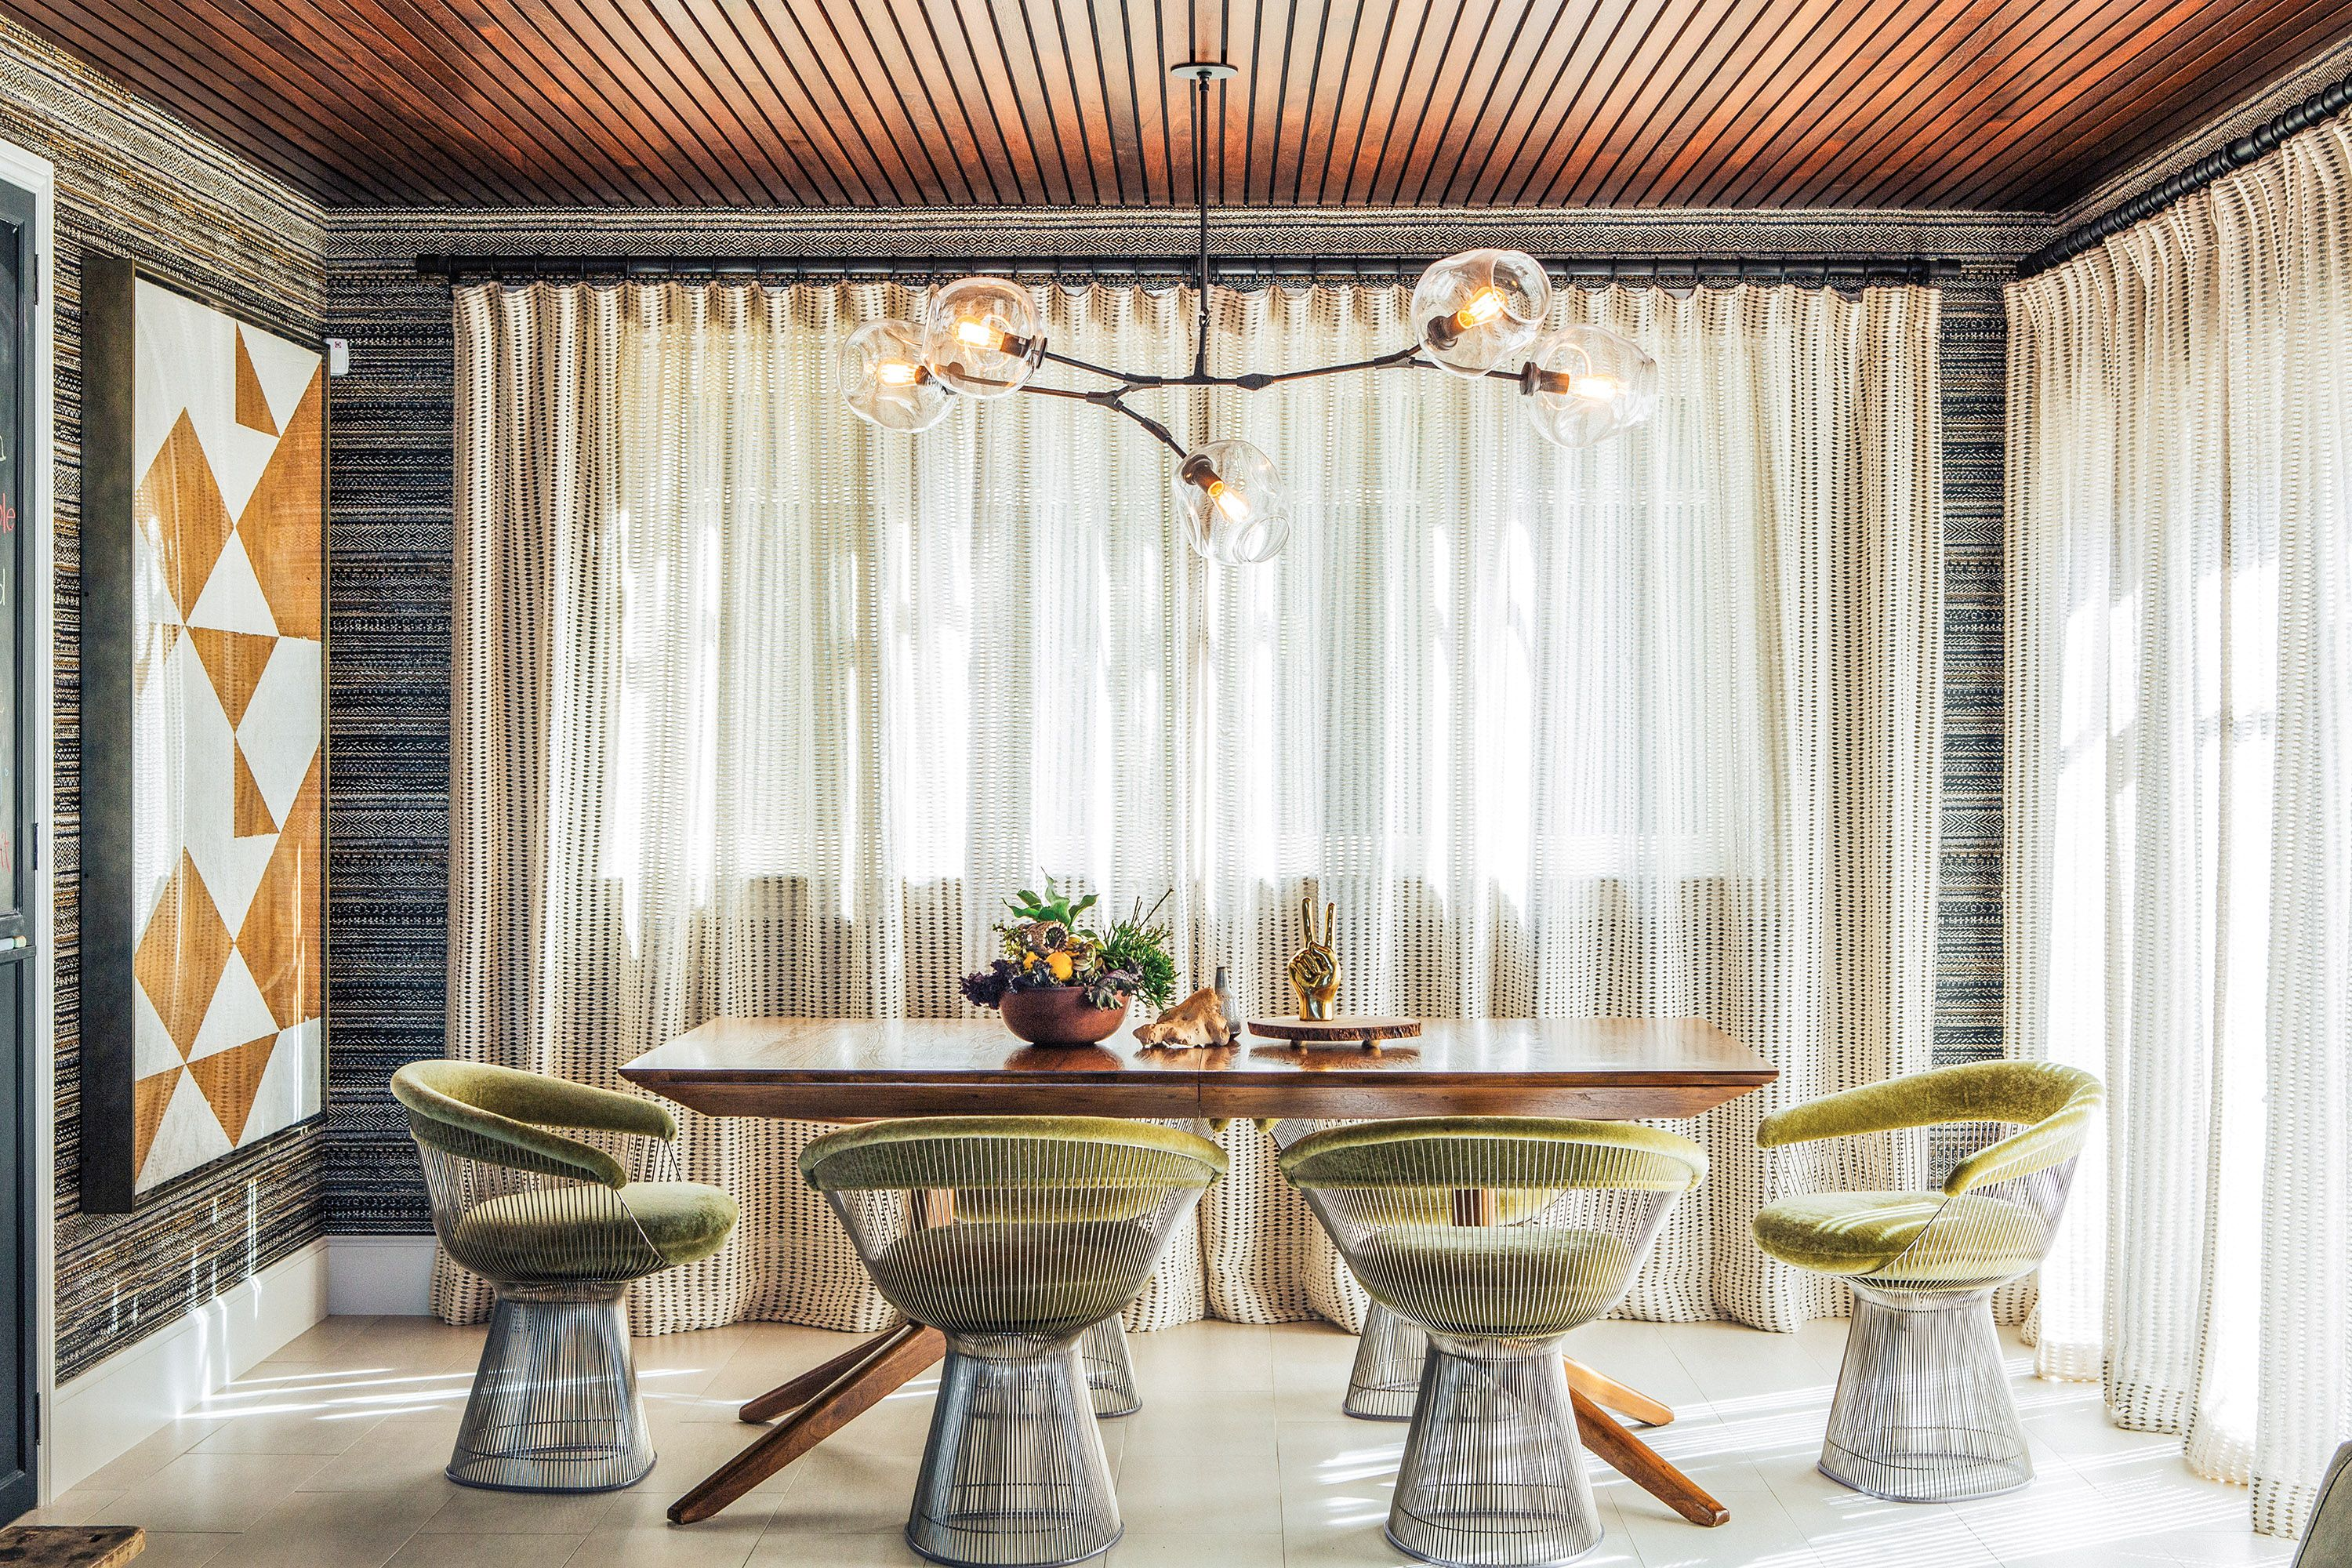 4e4fd7baabc4 Knoll Warren Platner dining chairs upholstered in mohair surround a custom  FLO Design Studio table beneath a Lindsey Adelman brass chandelier.